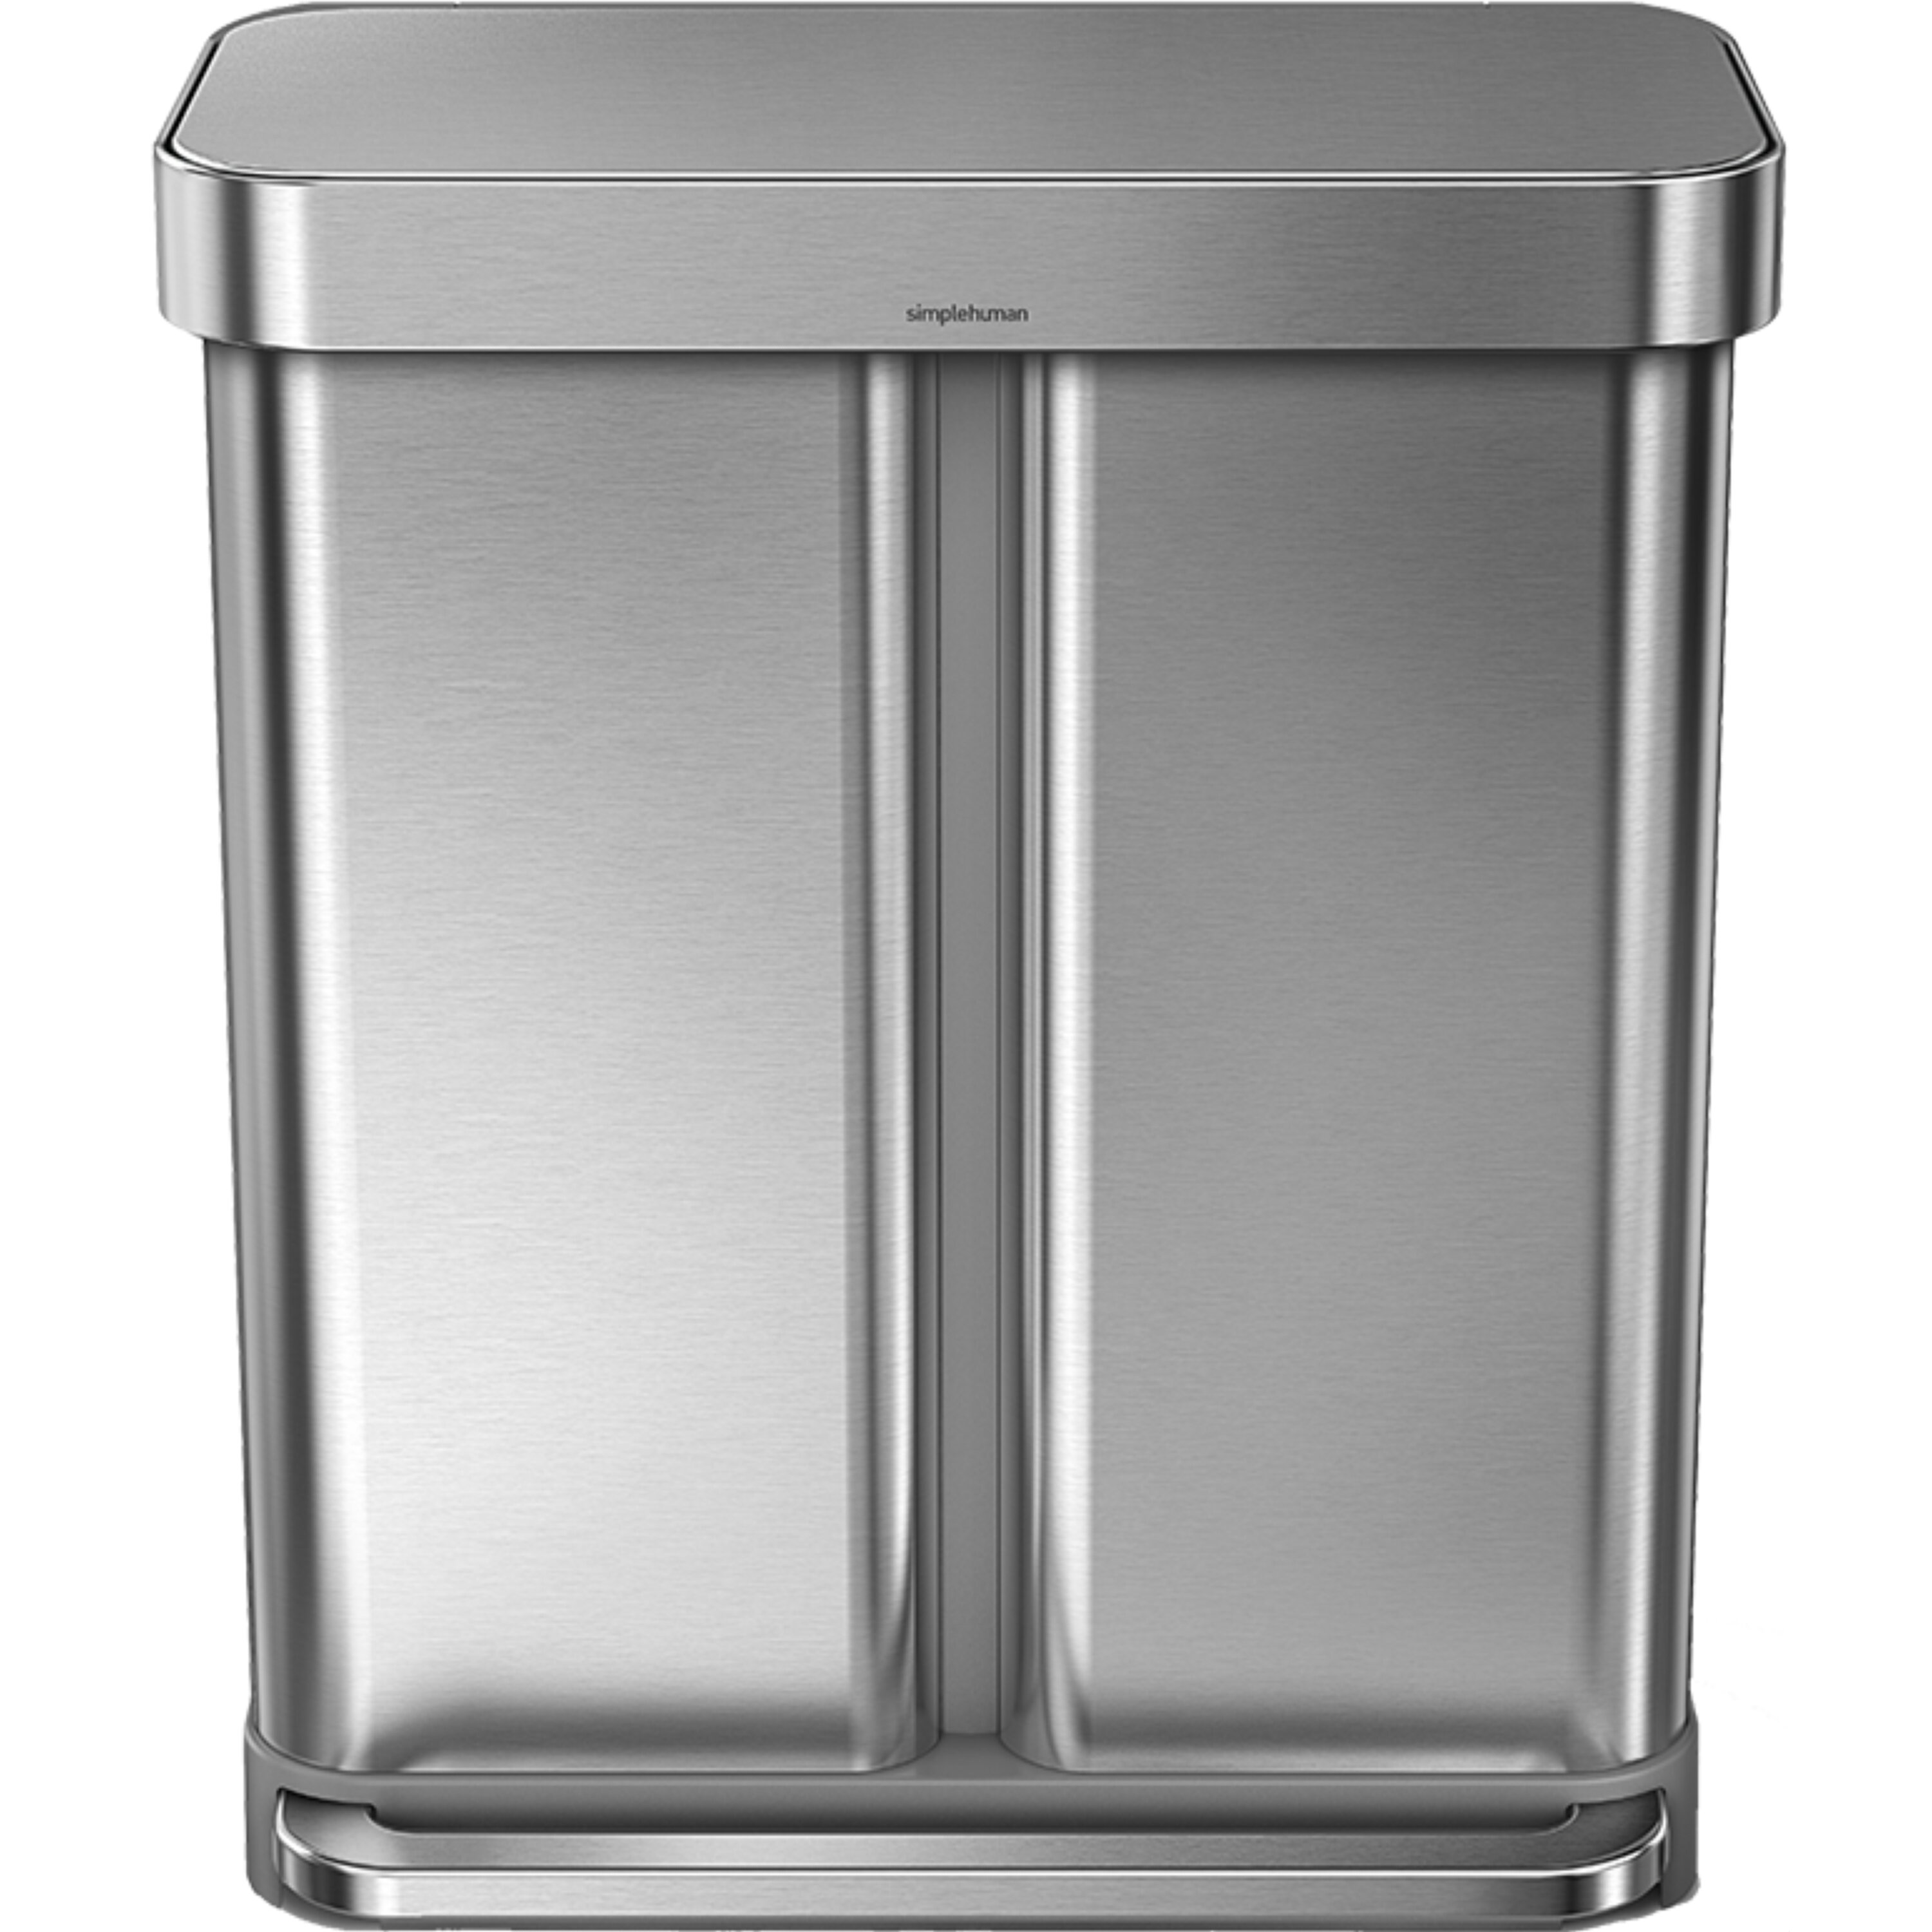 Retro Kitchen Trash Can Trash Cans Youll Love Wayfair